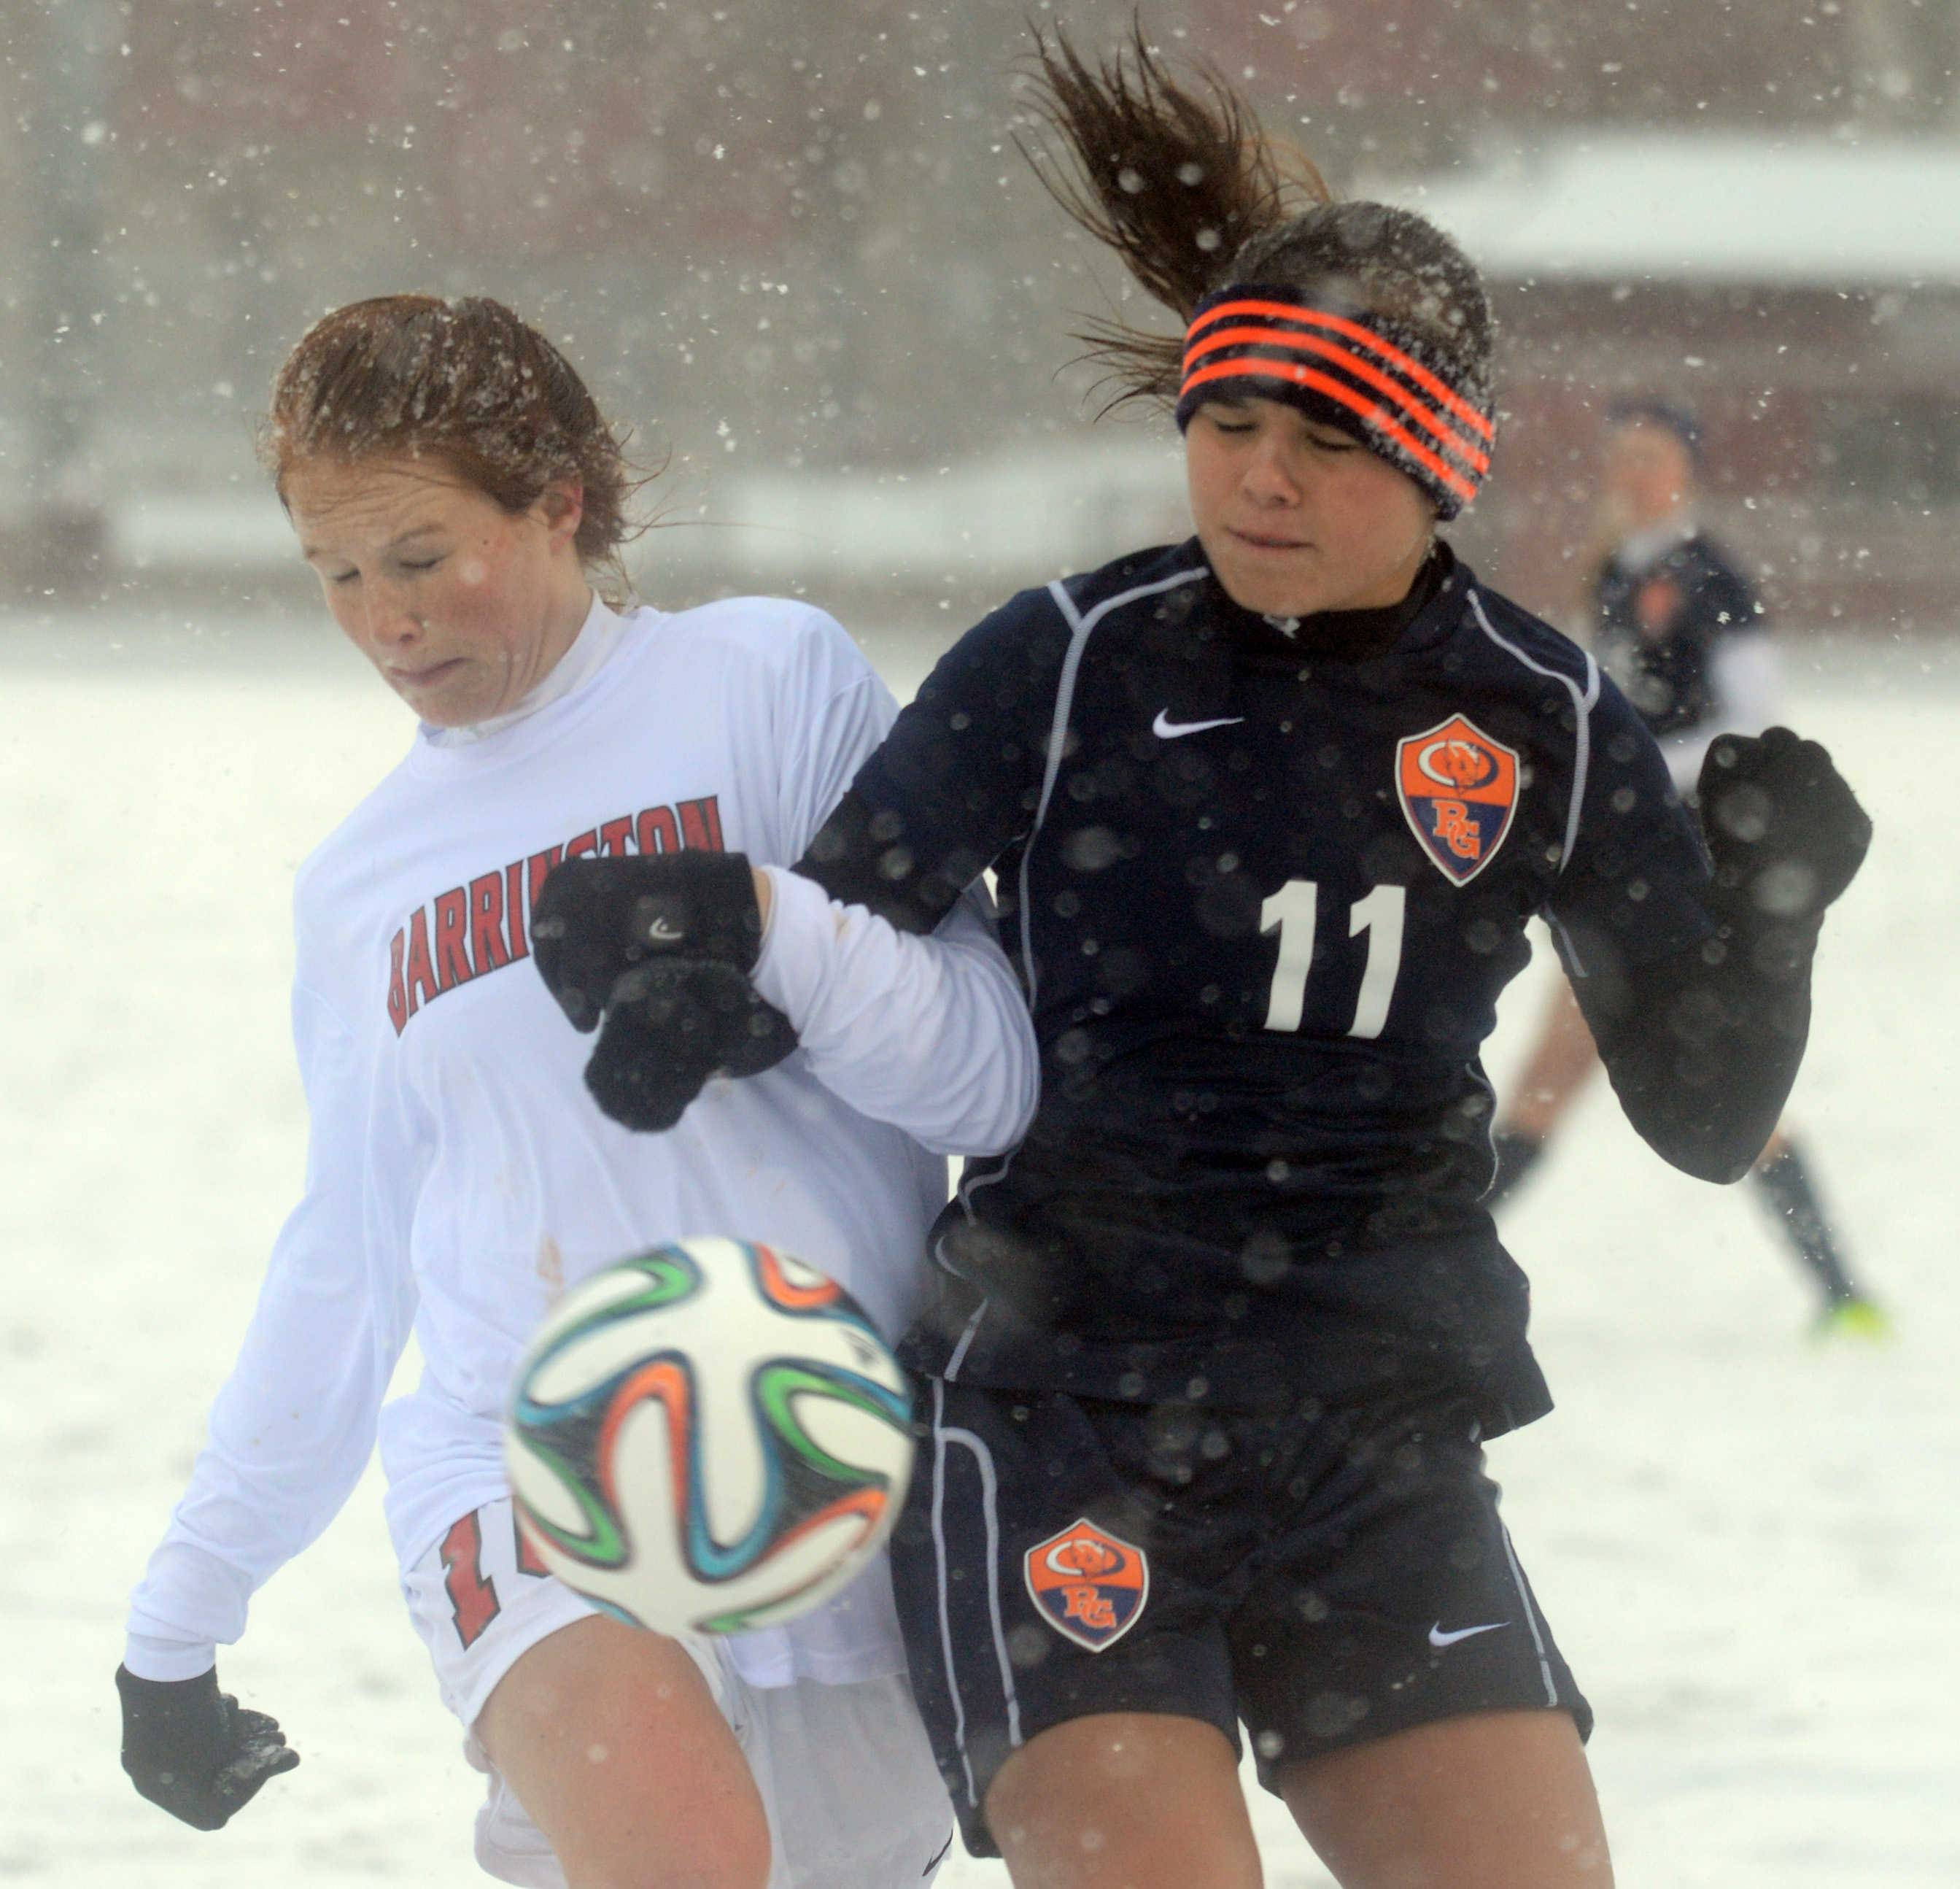 Barrington's Carrie Madden, left, gets tangled up with Buffalo Grove's Kim Herzog as they battle for the ball in the snow during Monday's soccer match in Barrington.